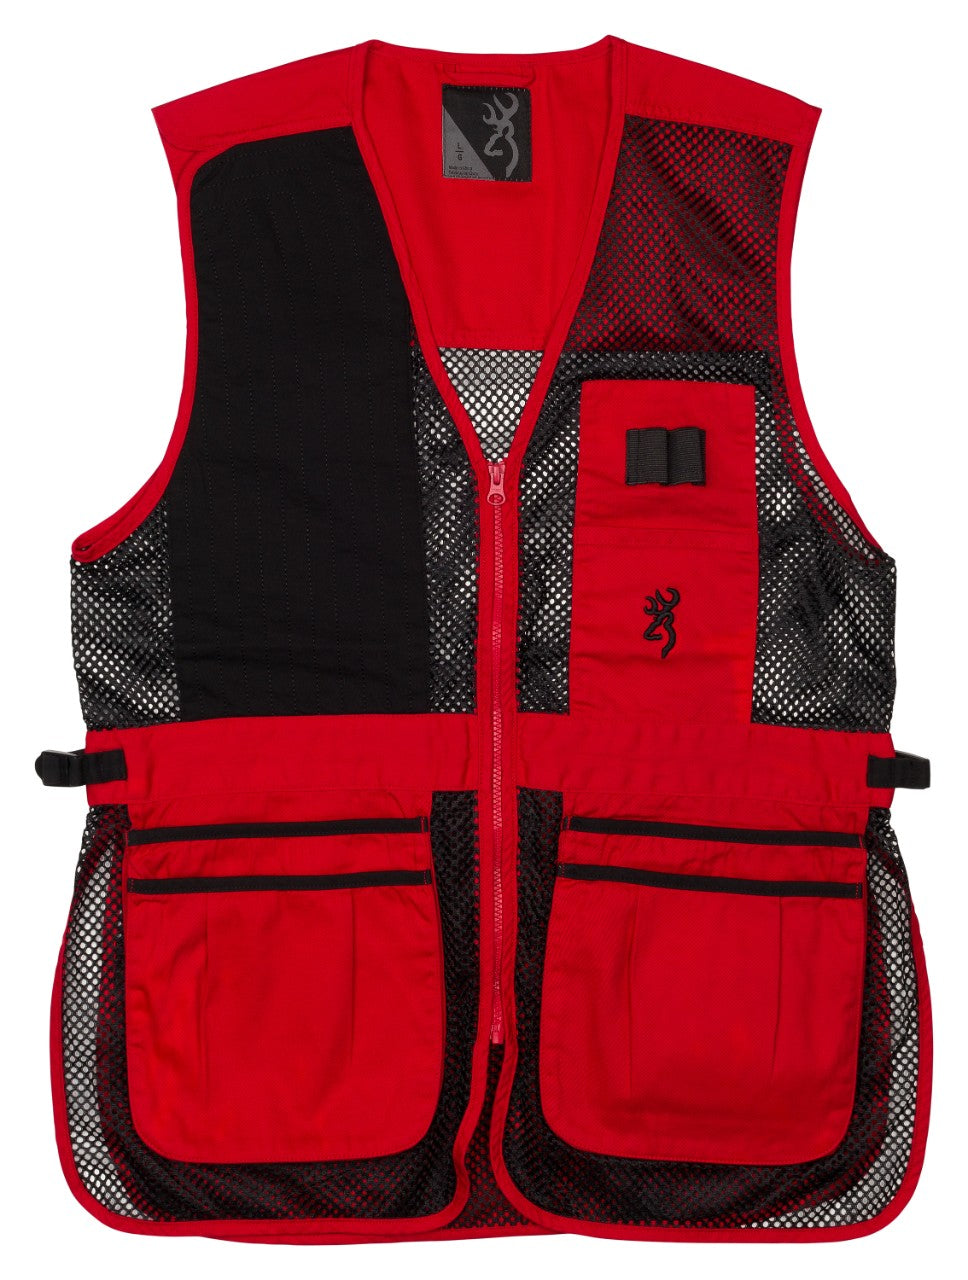 VST,TRAPPER CREEK RED/BLACK,M